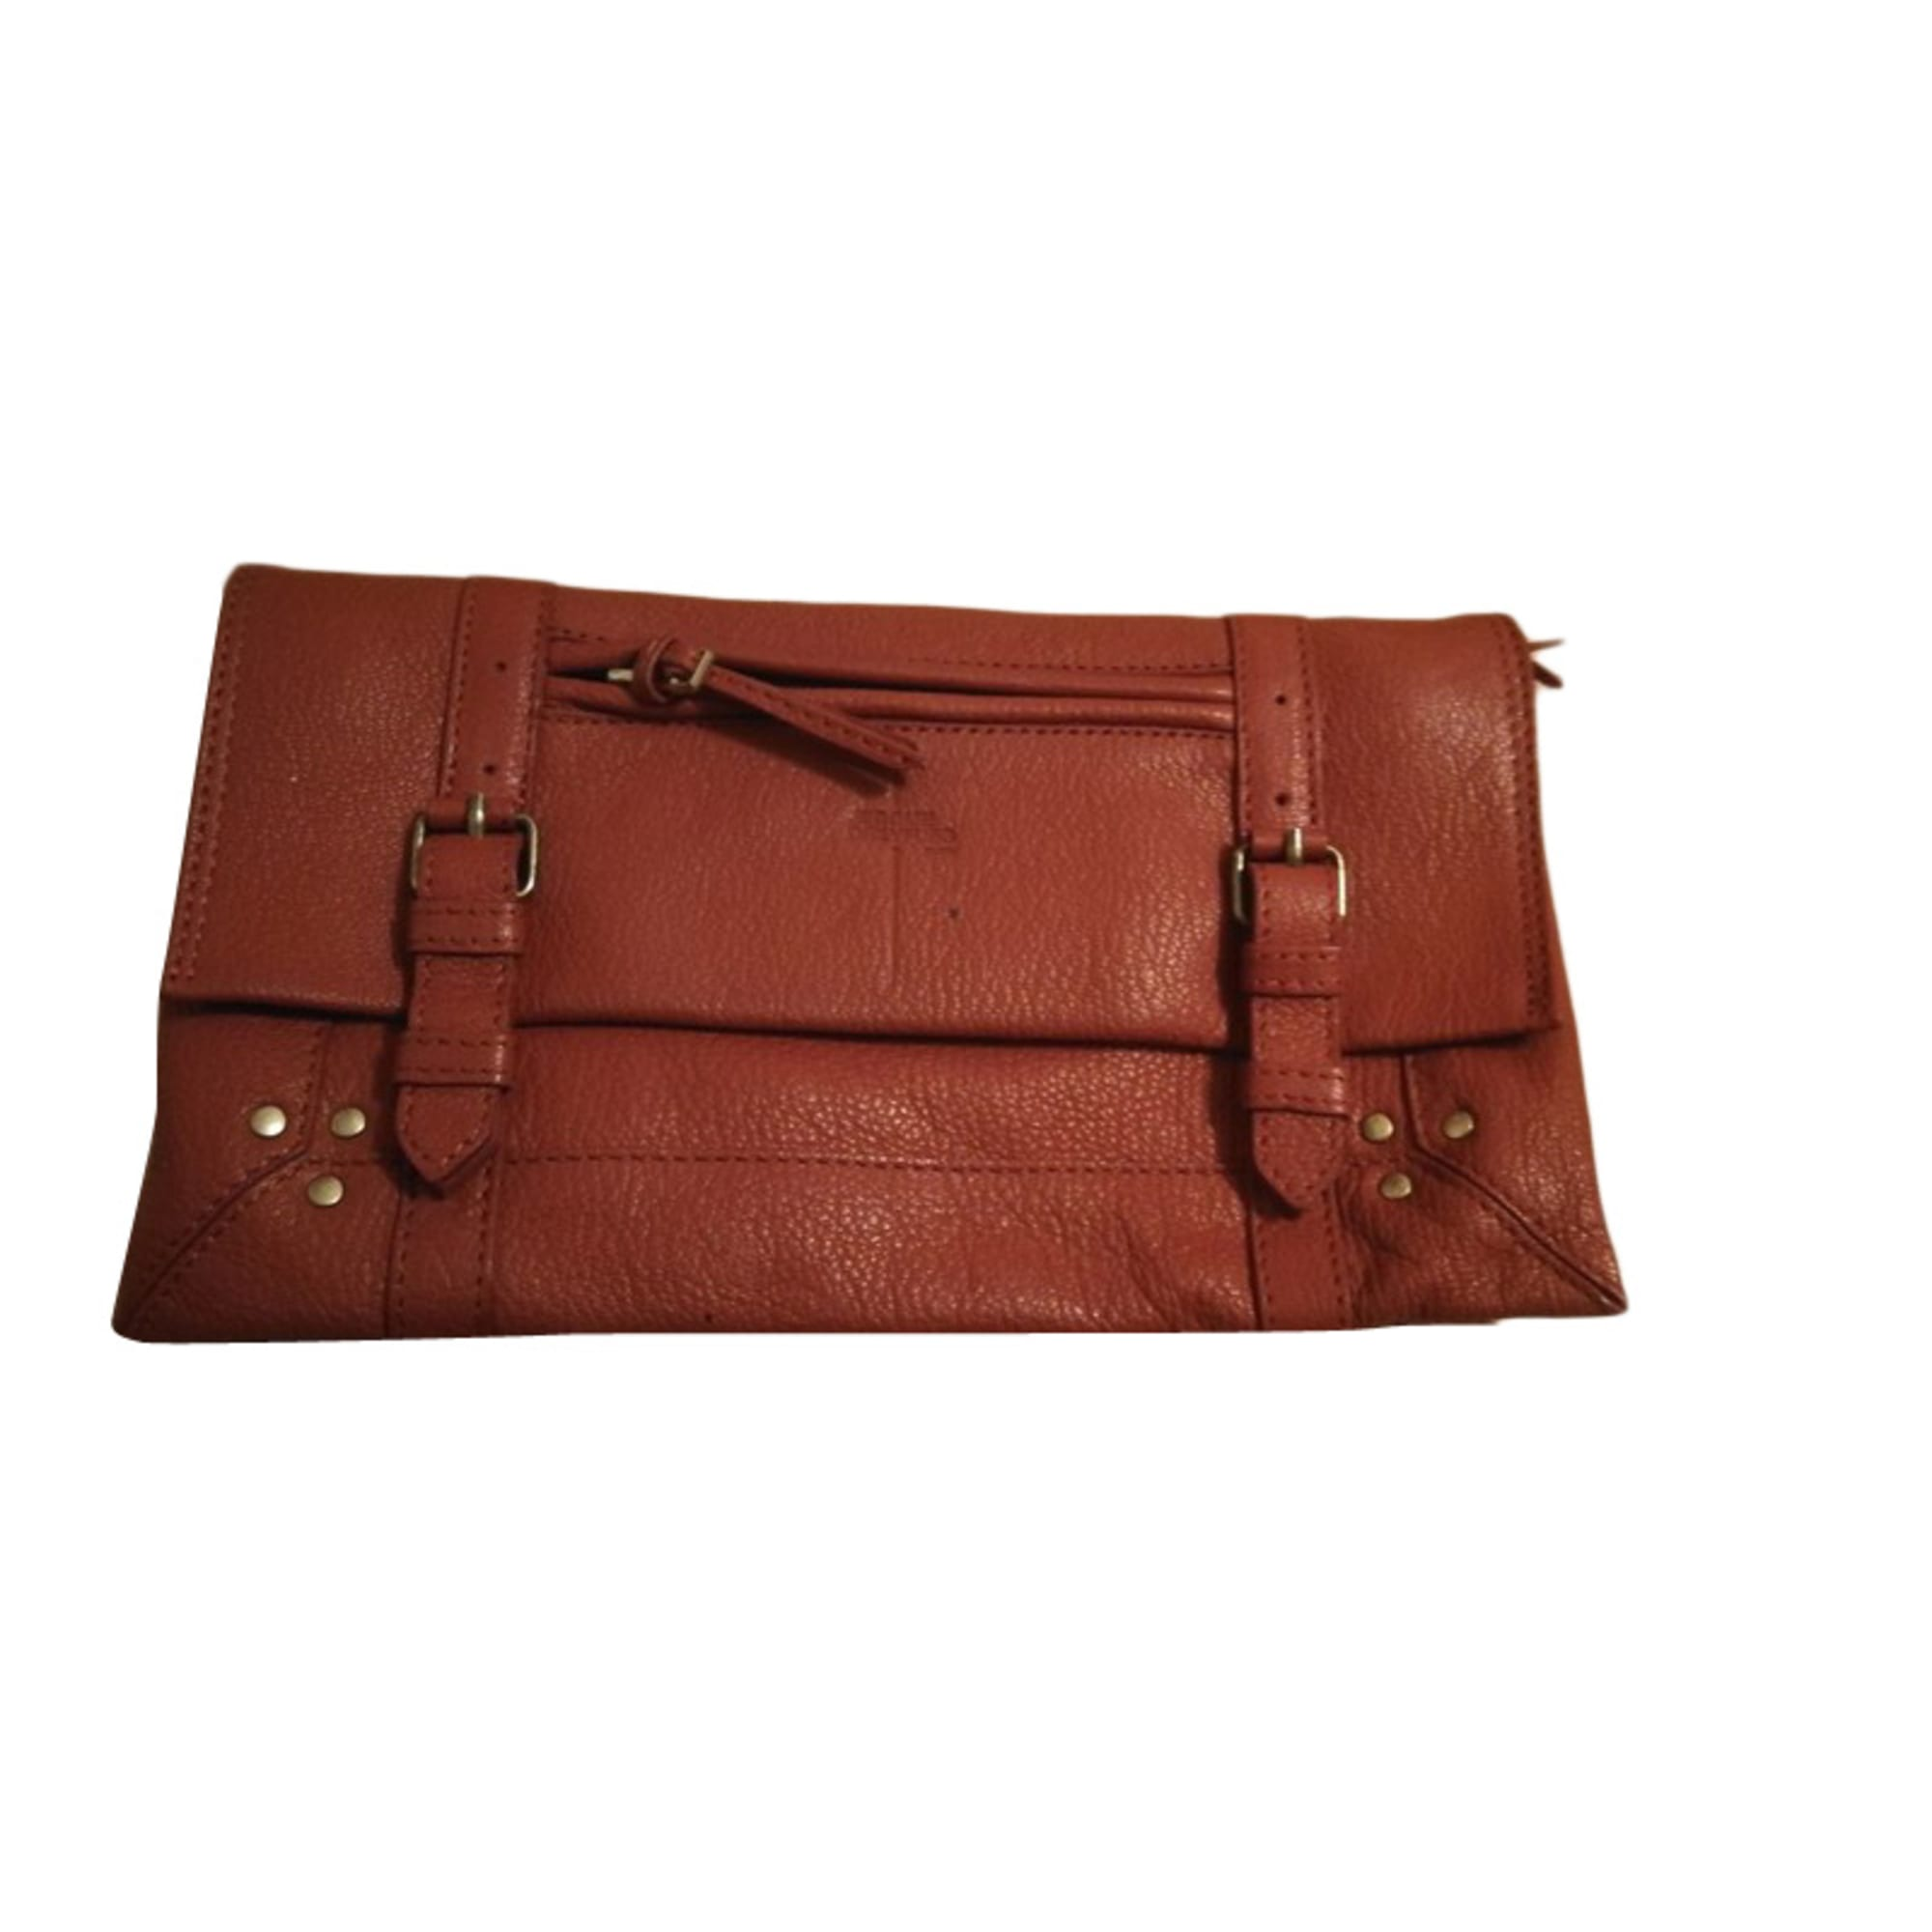 Leather Clutch JEROME DREYFUSS Brown